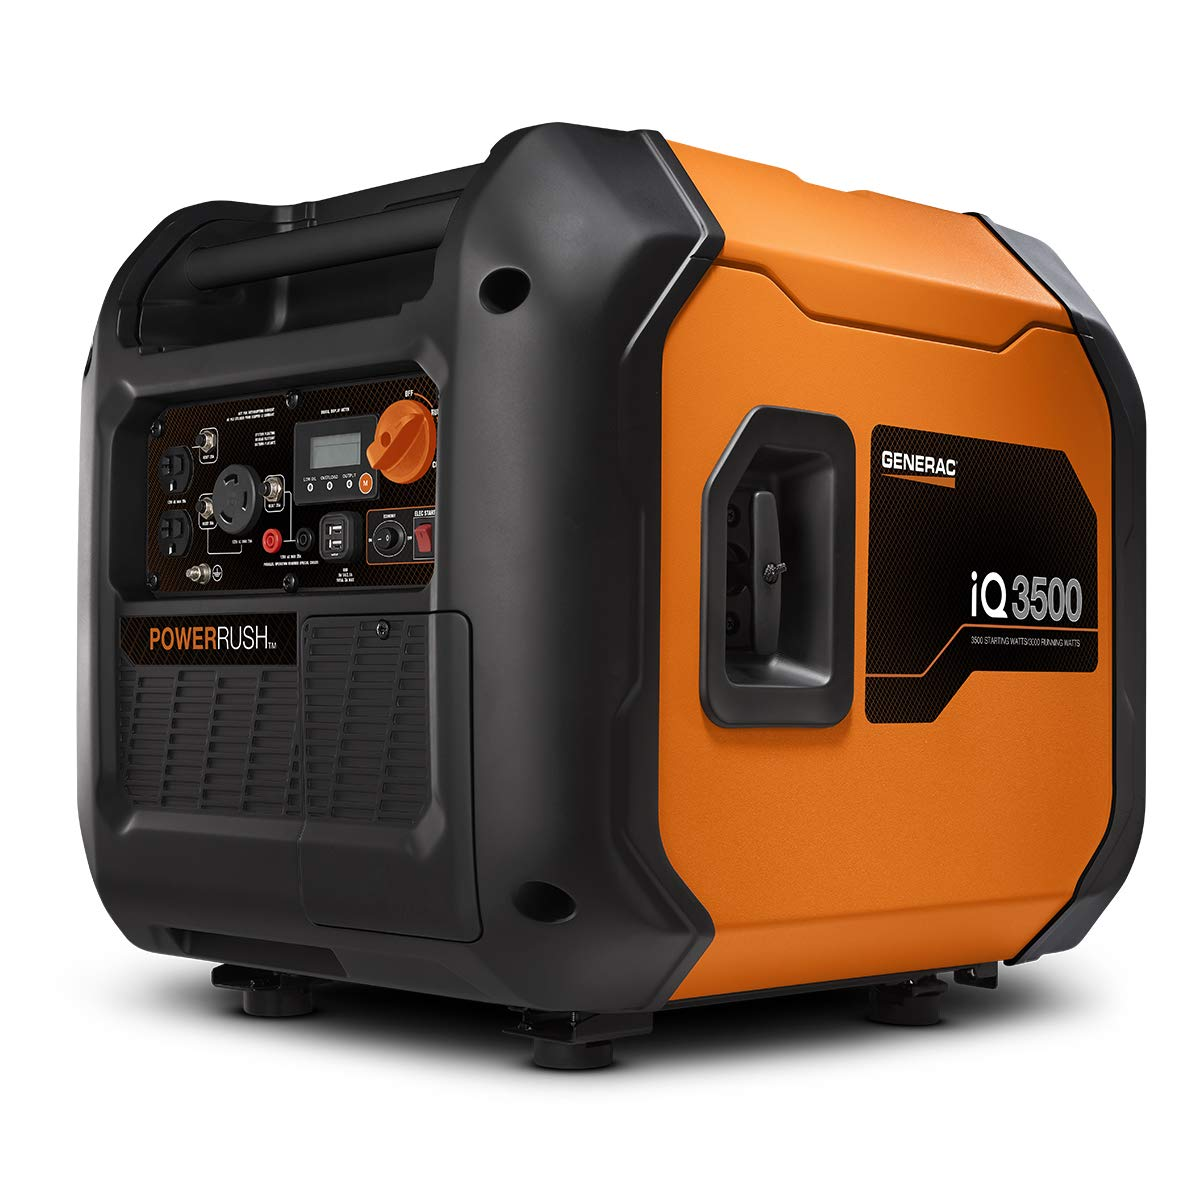 Generac 7127 iQ3500-3500 Watt Portable Inverter Generator Quieter Than Honda, Orange Black